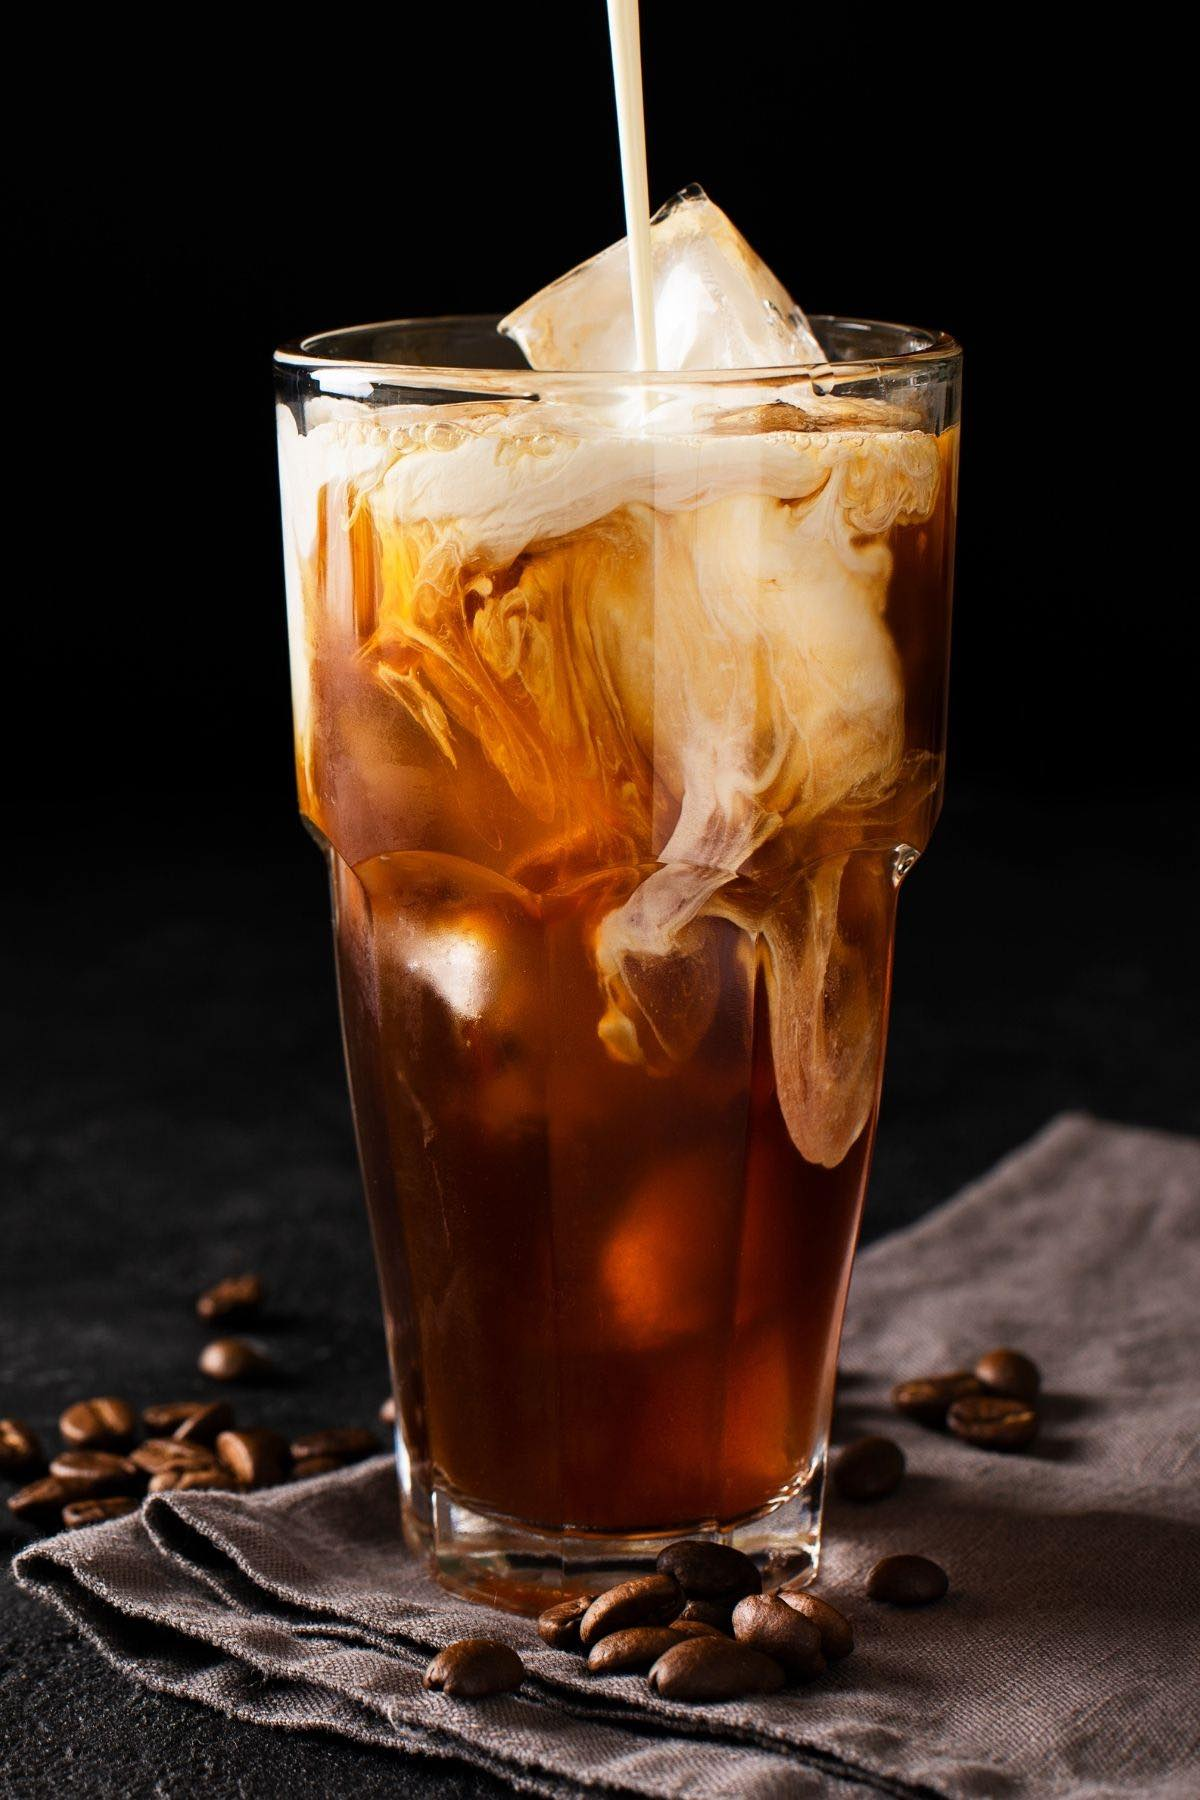 No fancy gear needed to make this Starbucks Copycat Vanilla Sweet Cream Cold Brew at home! Made with a few simple ingredients, it's sweet, creamy, and full of iced coffee flavor. I'll show you the correct cold brew coffee ratios and how to make the perfect vanilla sweet cream! At the fraction of the price, it's so easy to make and you can now enjoy it regularly!